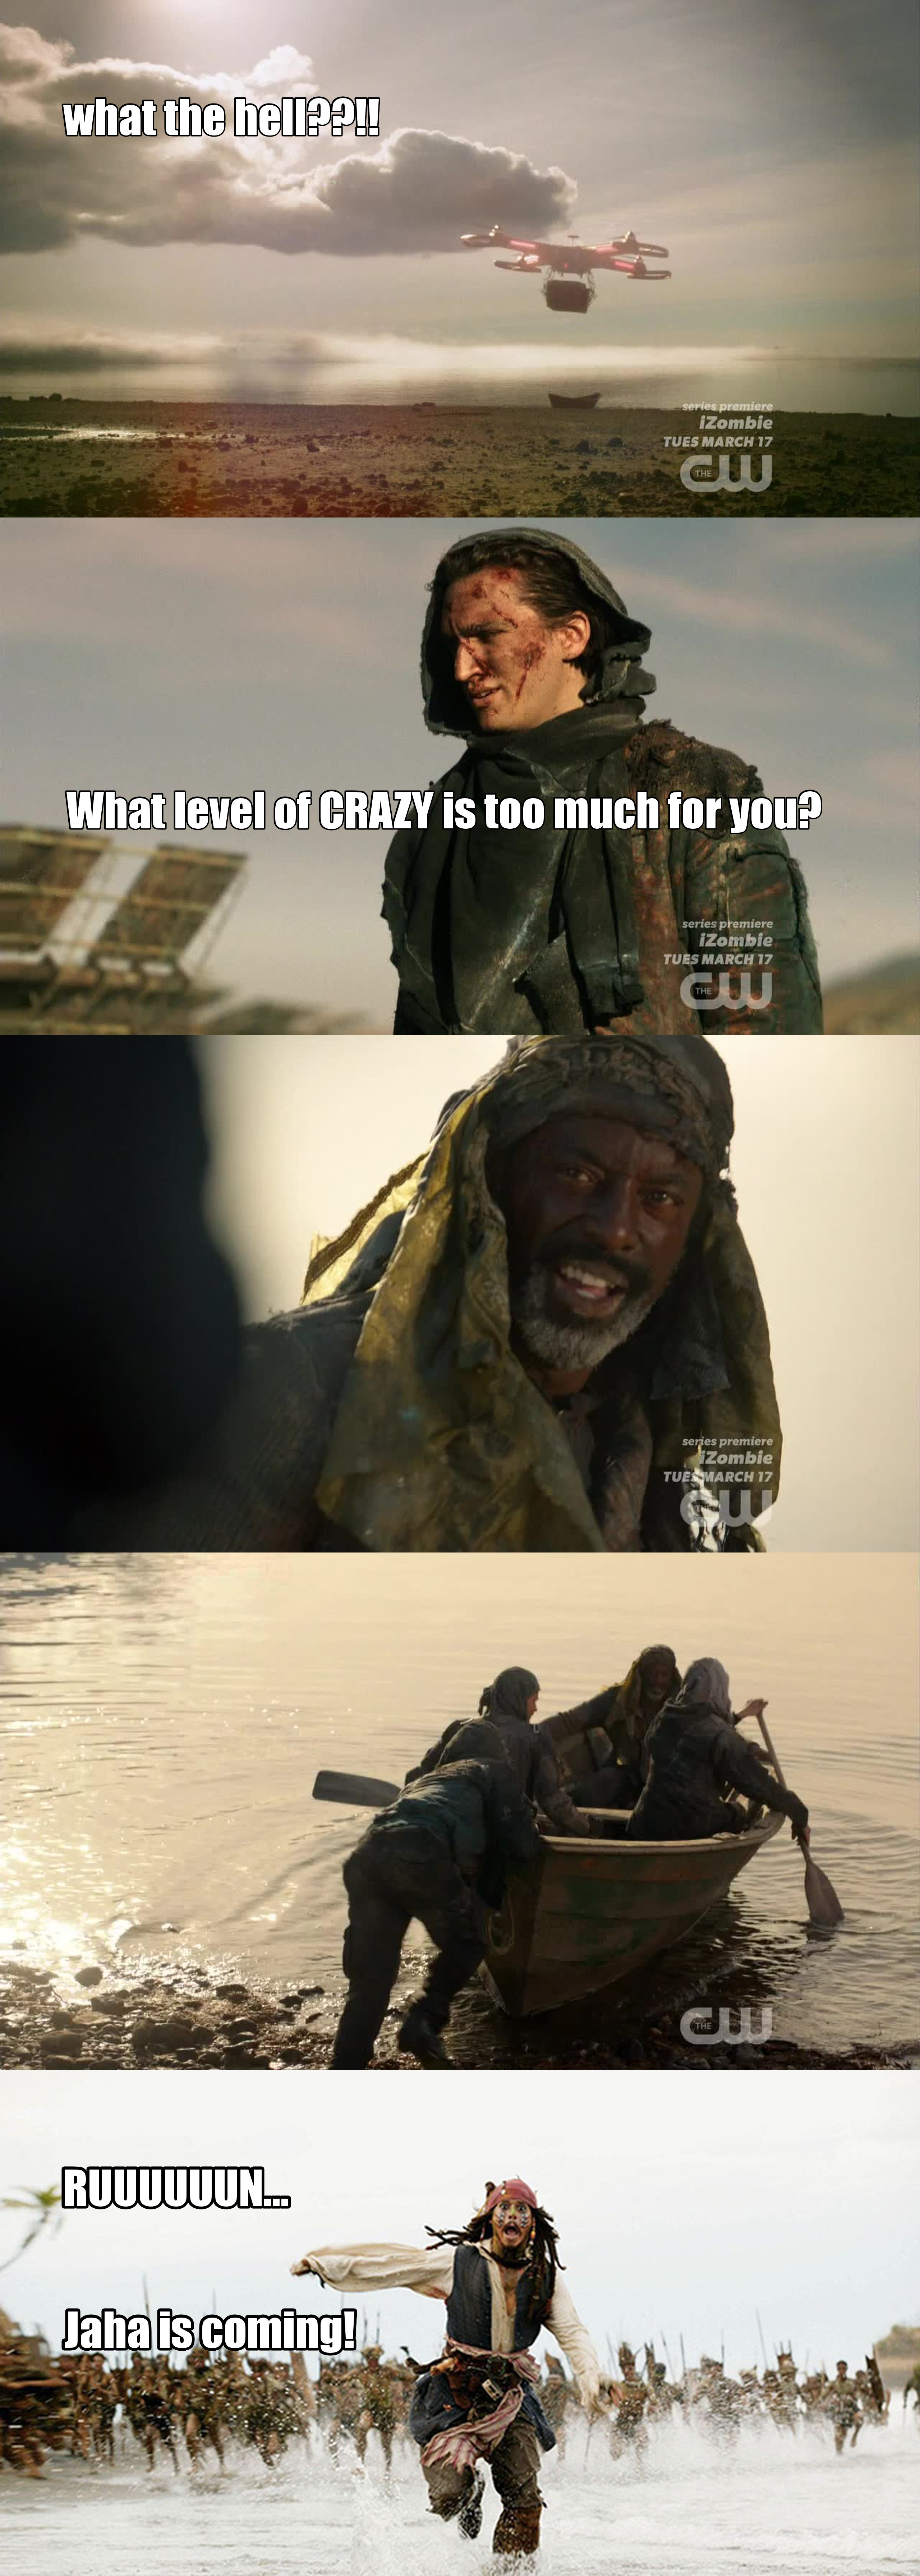 This week Jaha & co were the best part!